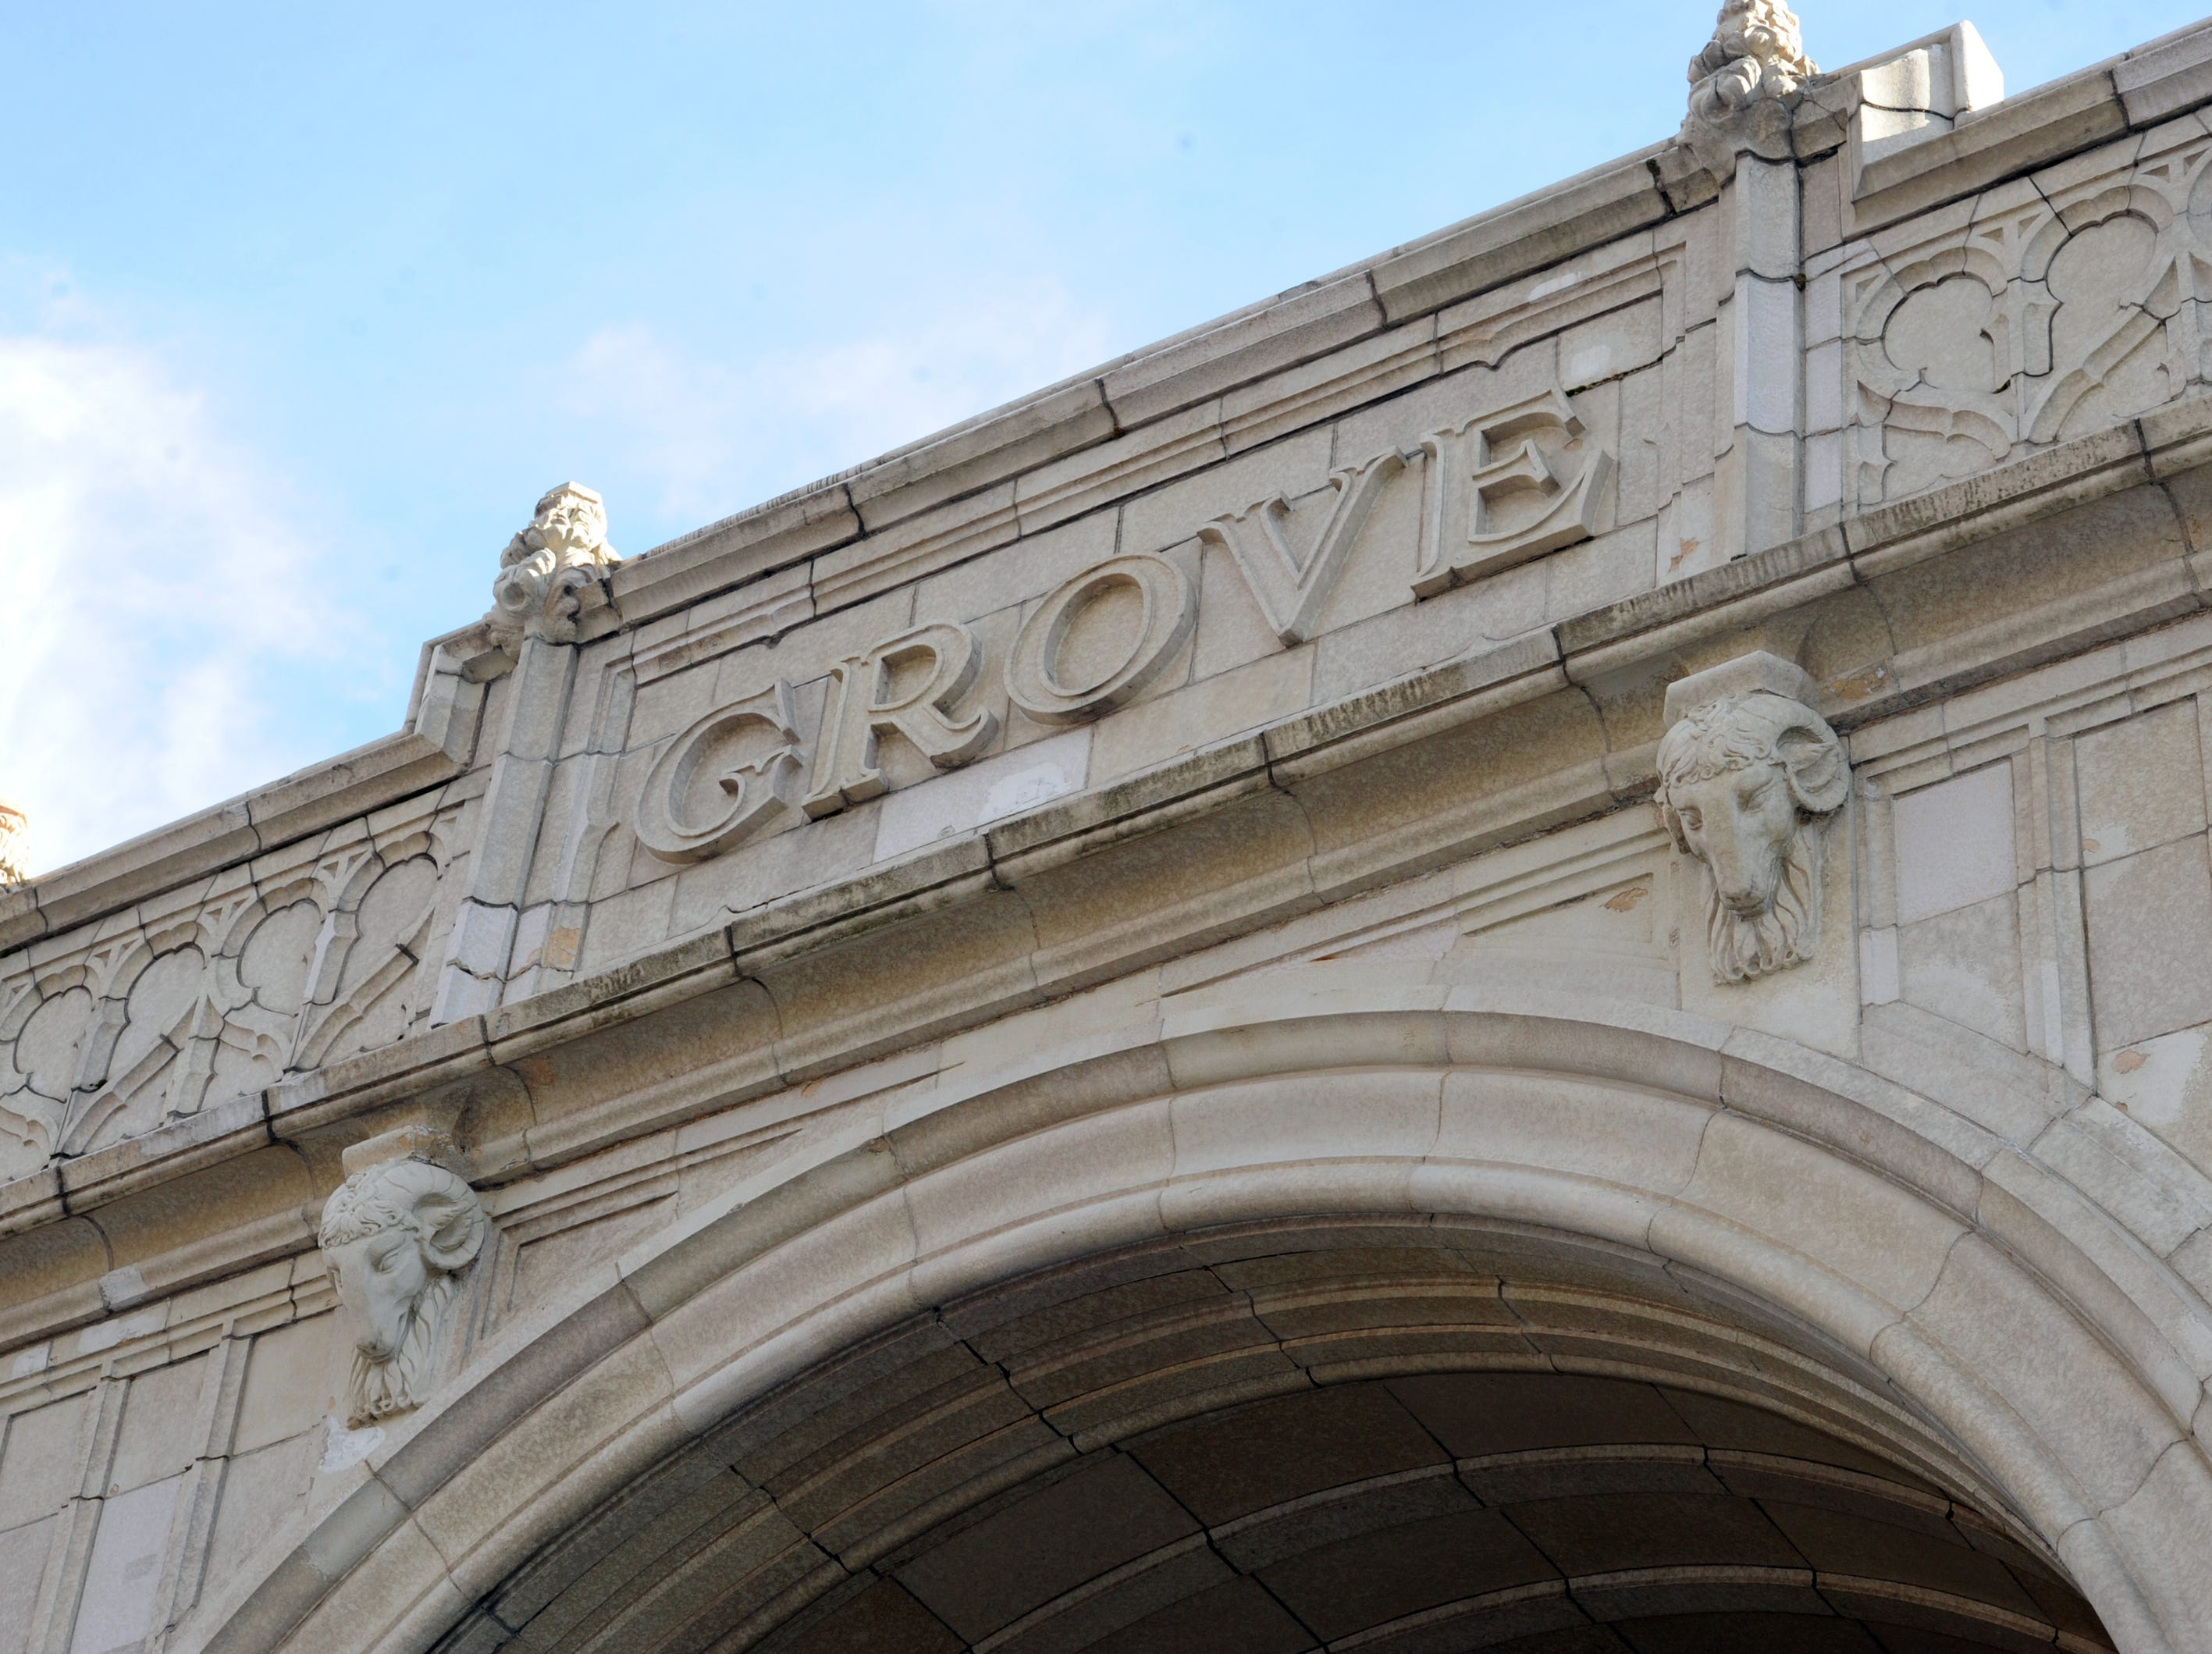 E.W. Grove first built the Batter Park Hotel, across the street from the north entrance of the Grove Arcade.